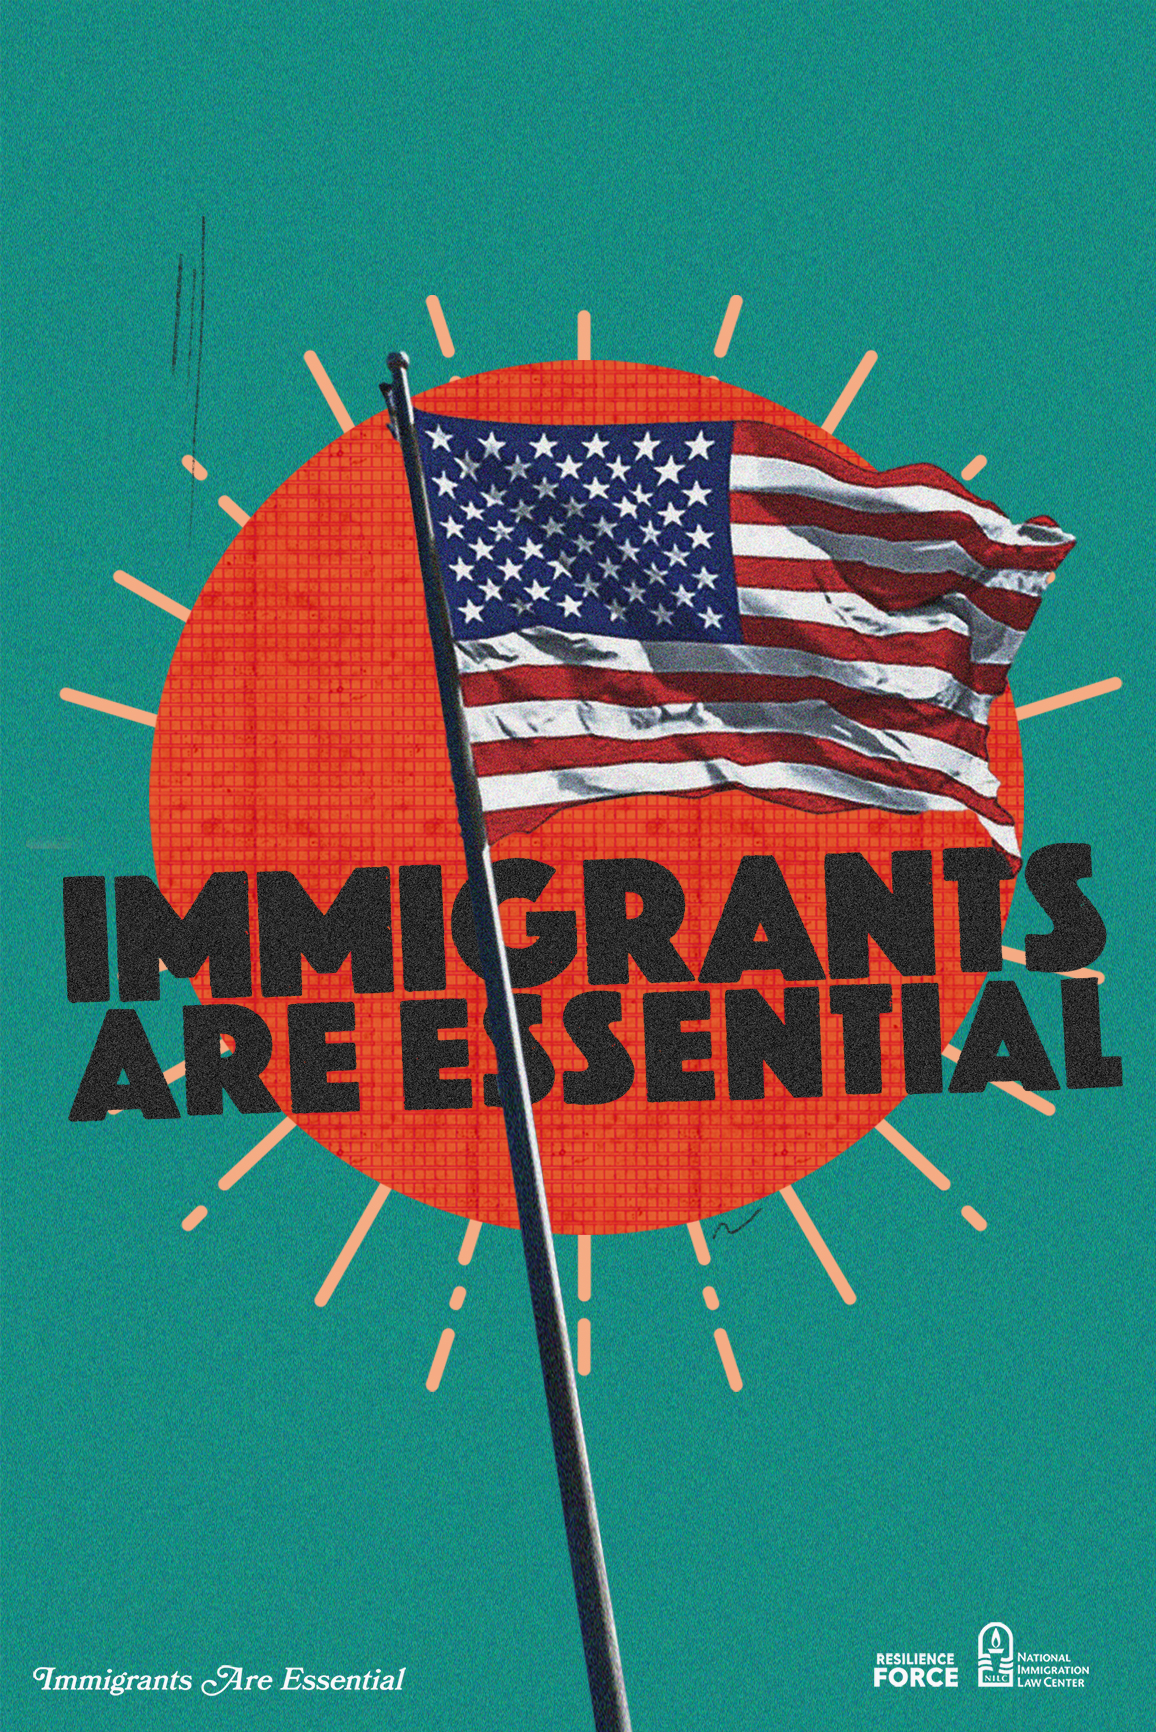 Immigrants Are Essential